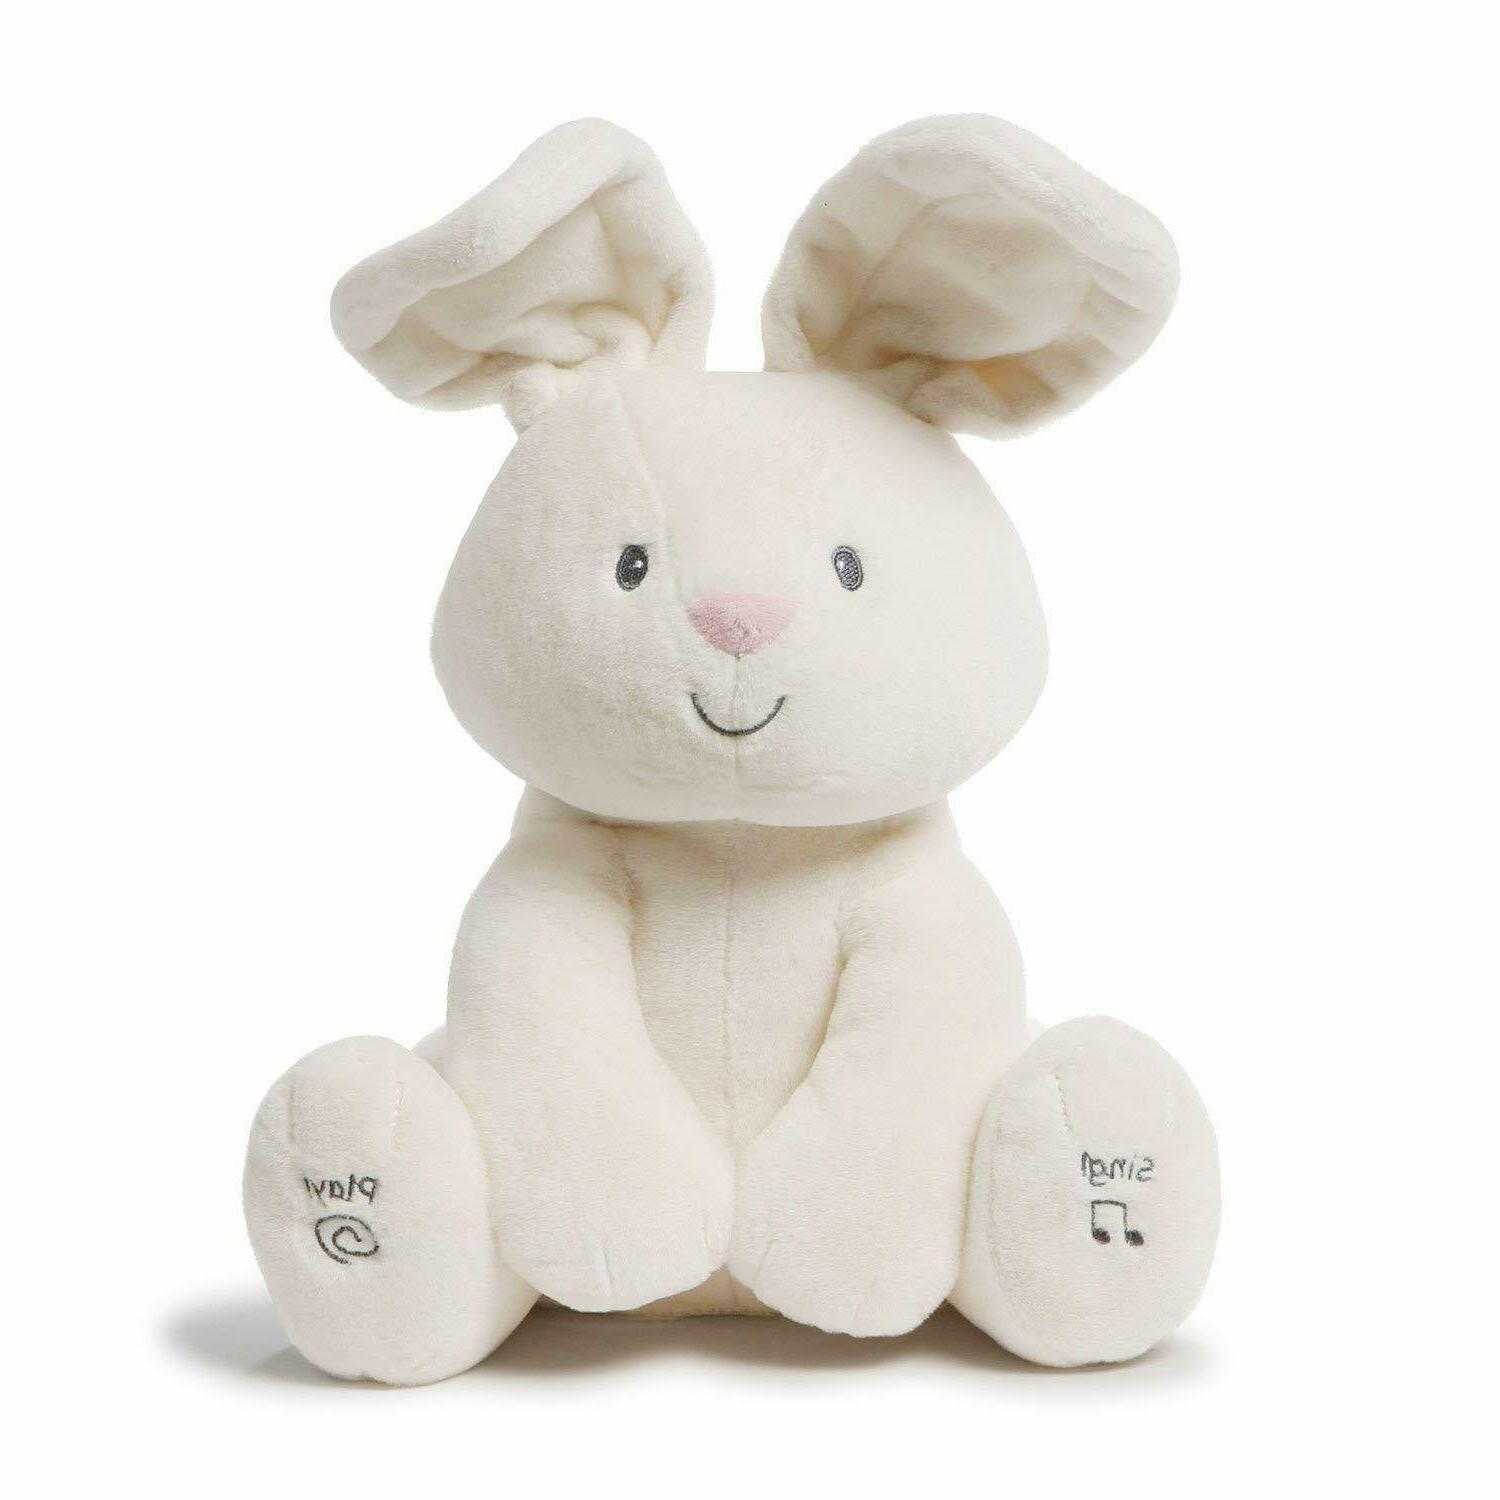 Gund Baby Flora The Bunny Animated Plush Stuffed Animal Toy,